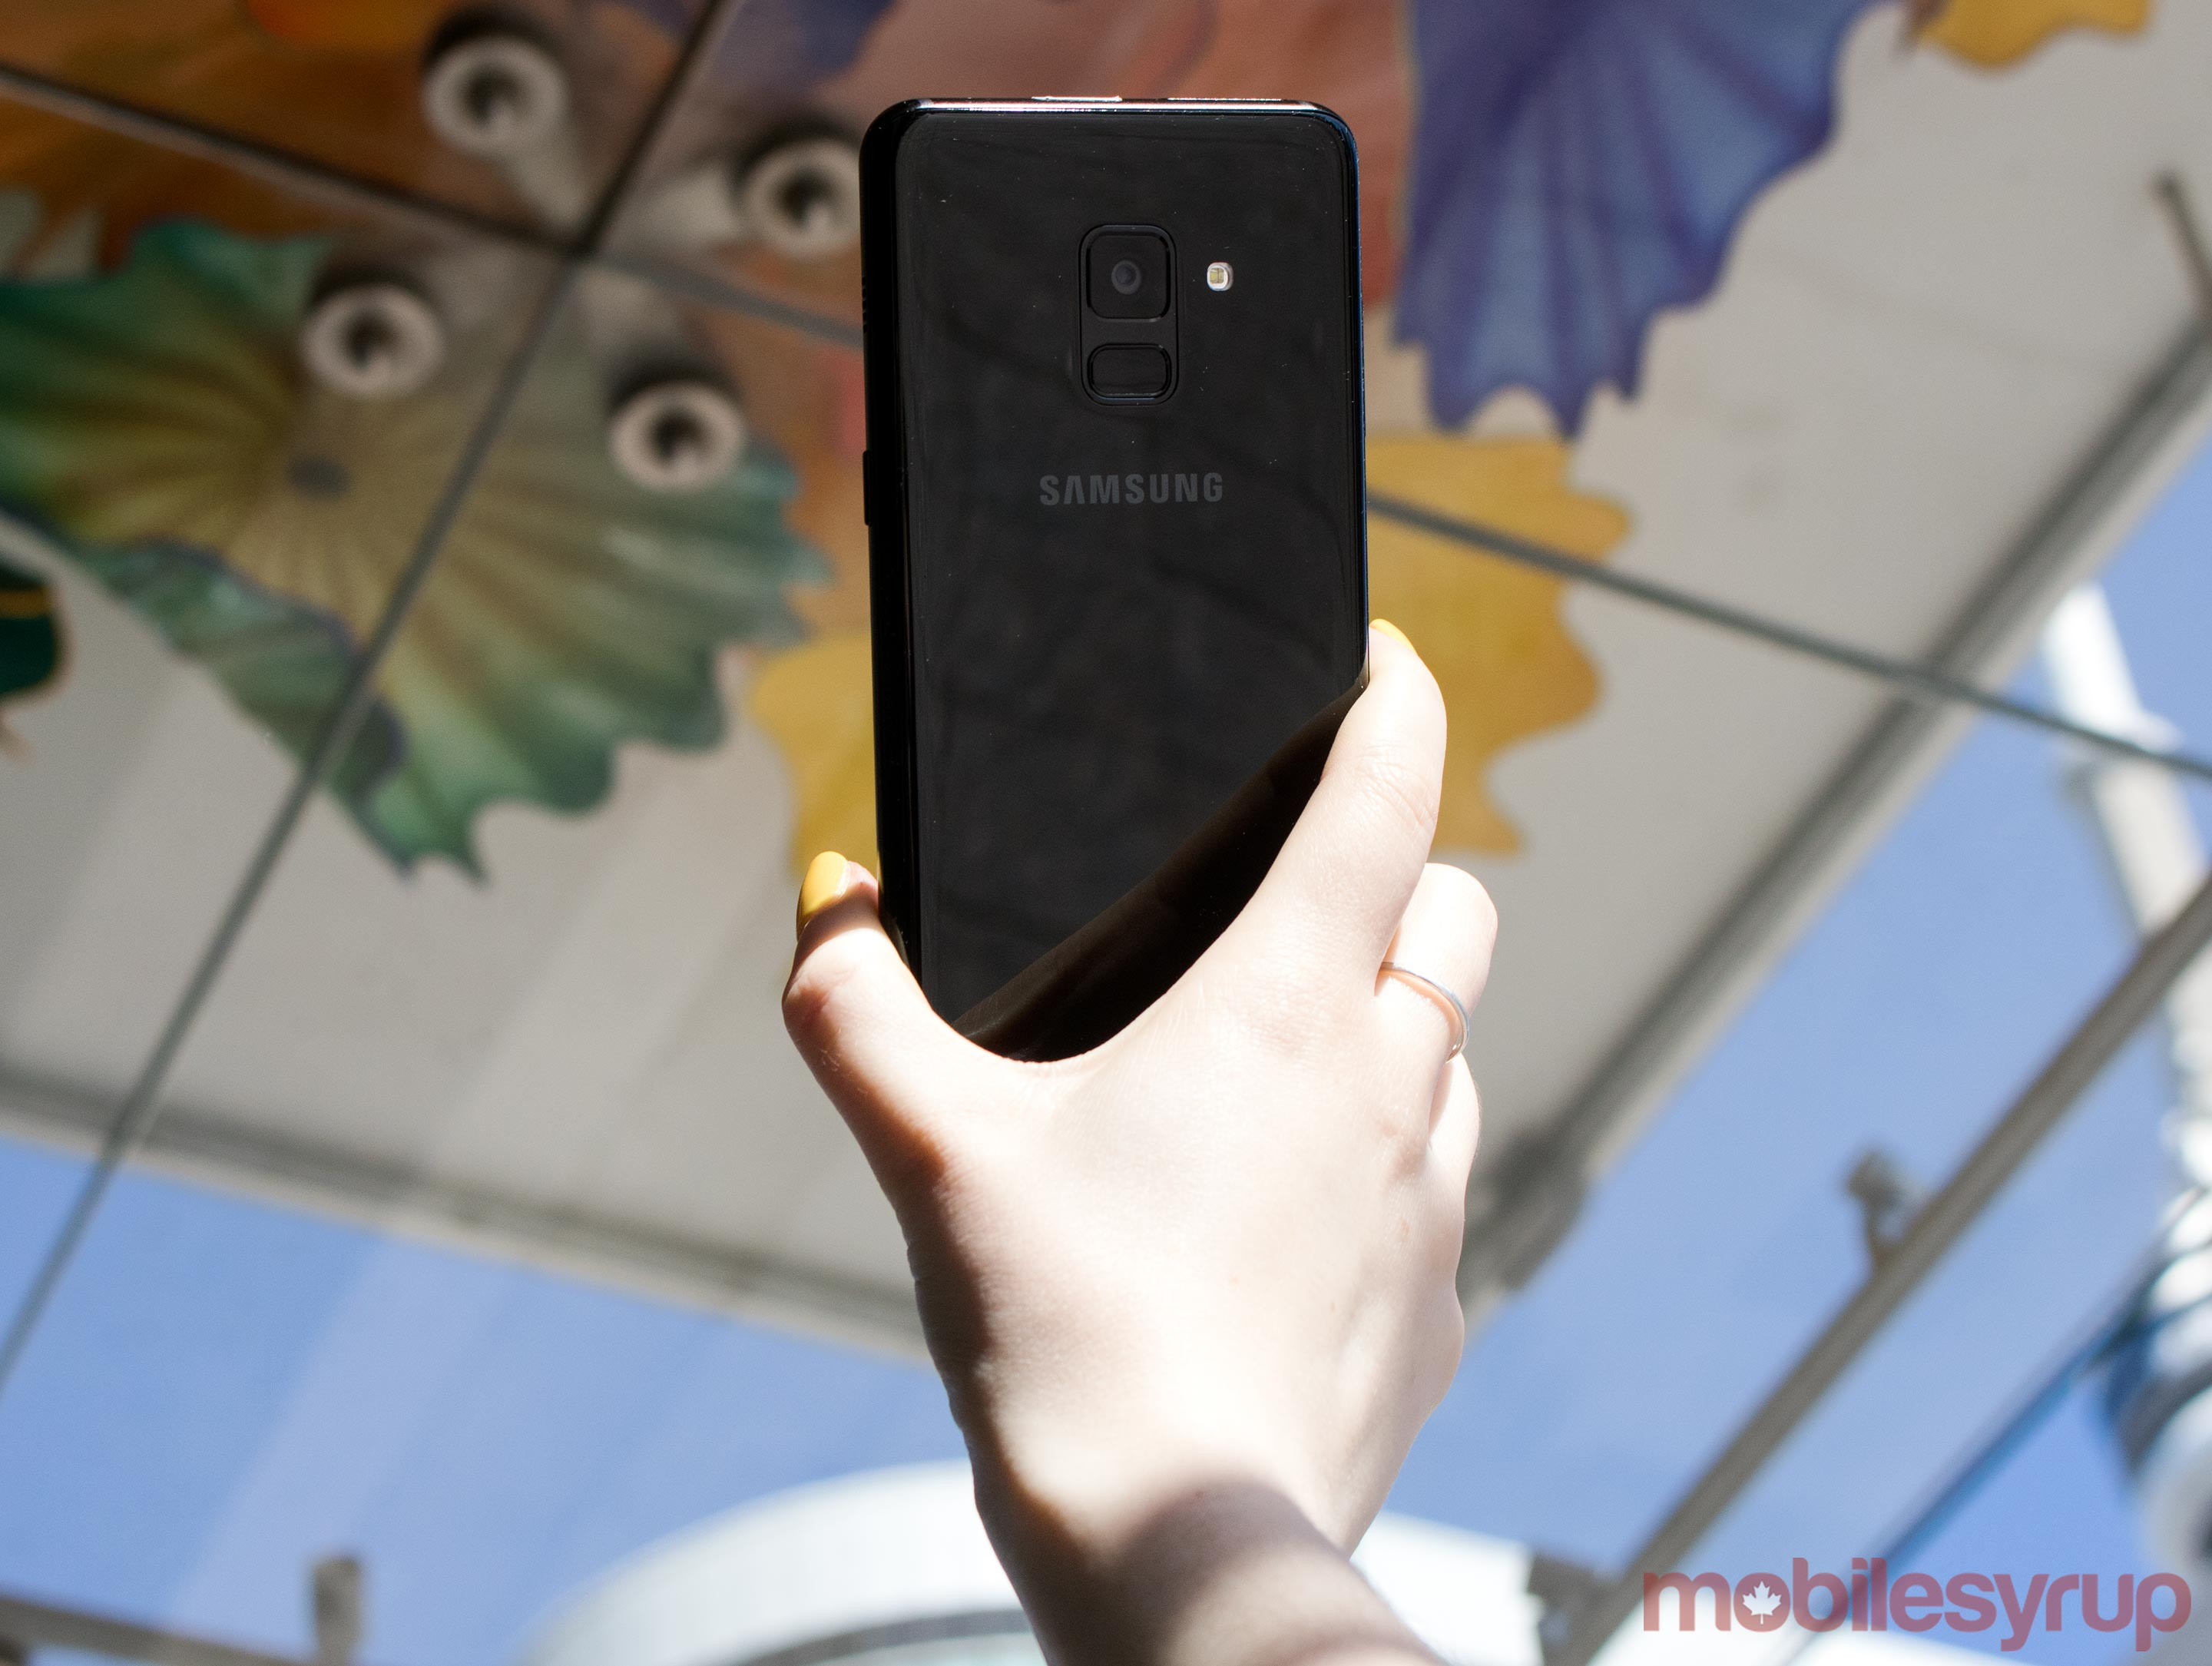 Samsung Galaxy A8: Flat, small and a mid-range selfie champ